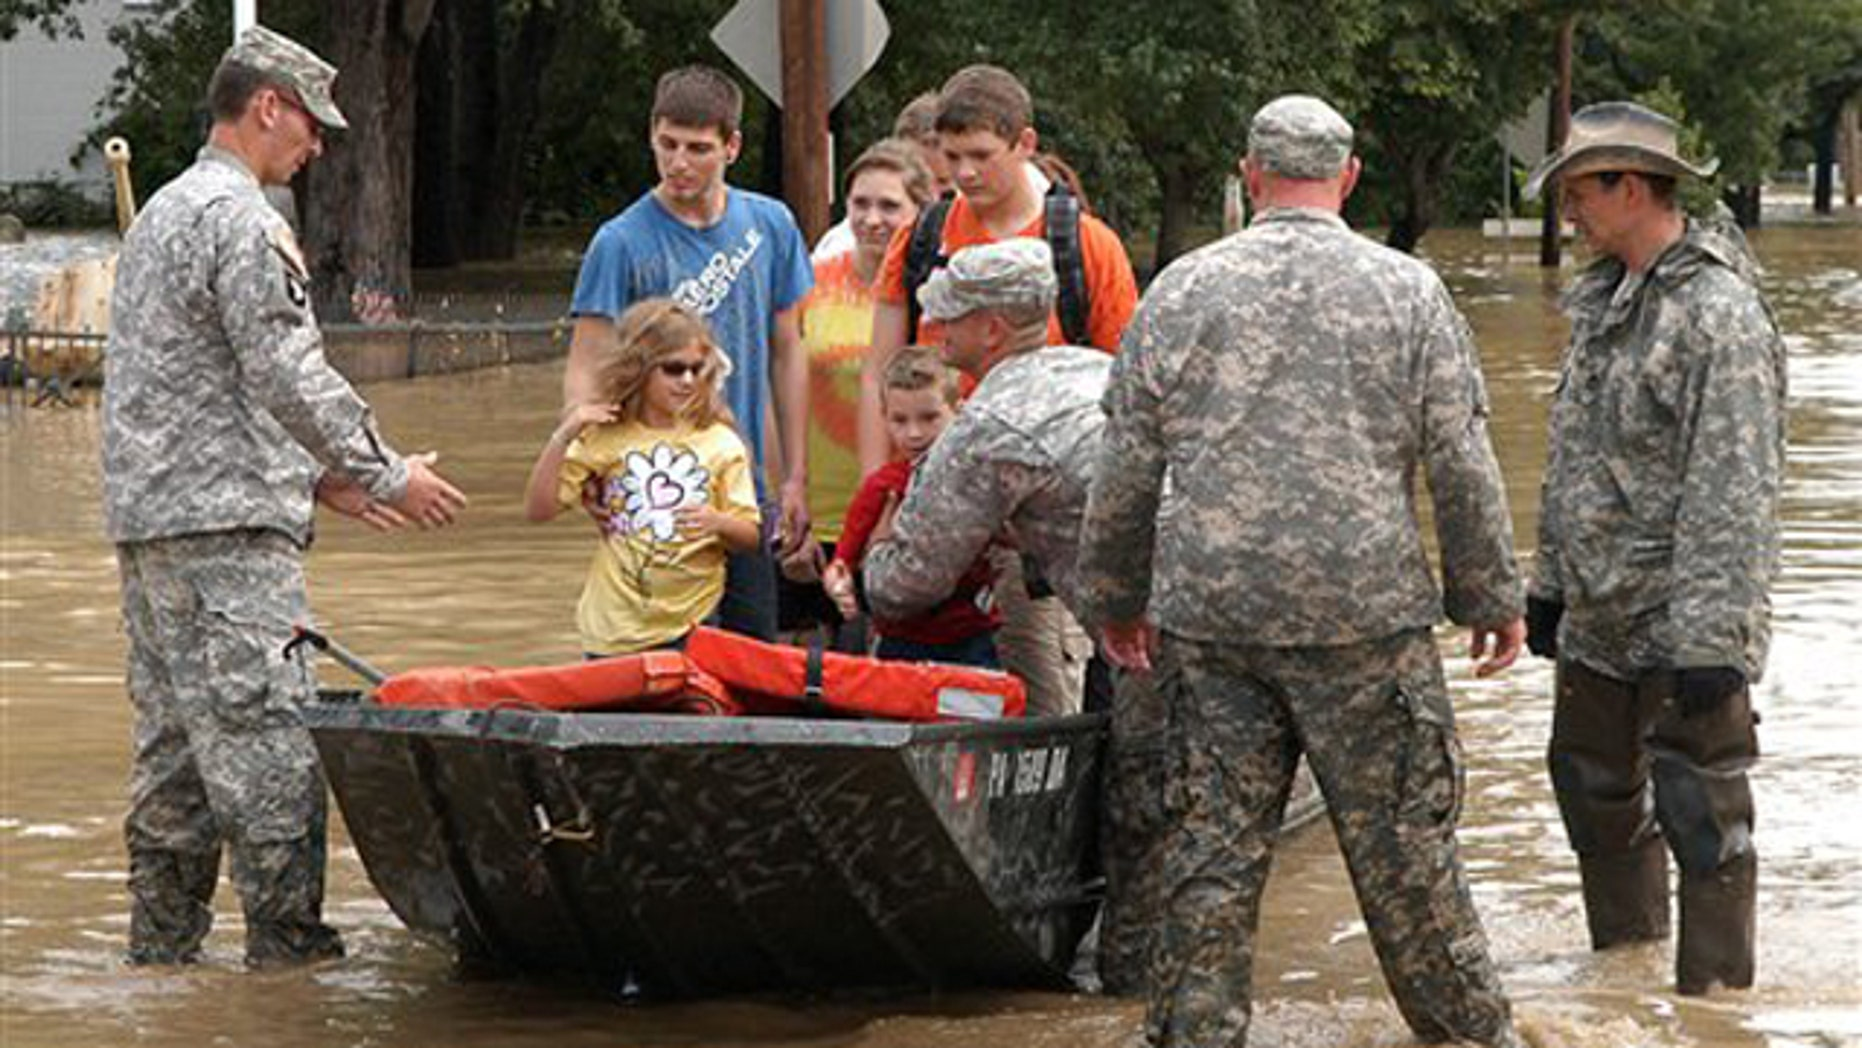 The Army National Guard is shown rescuing residents from their home Sept. 9 in West Pittston, Pa., amid high floodwaters.